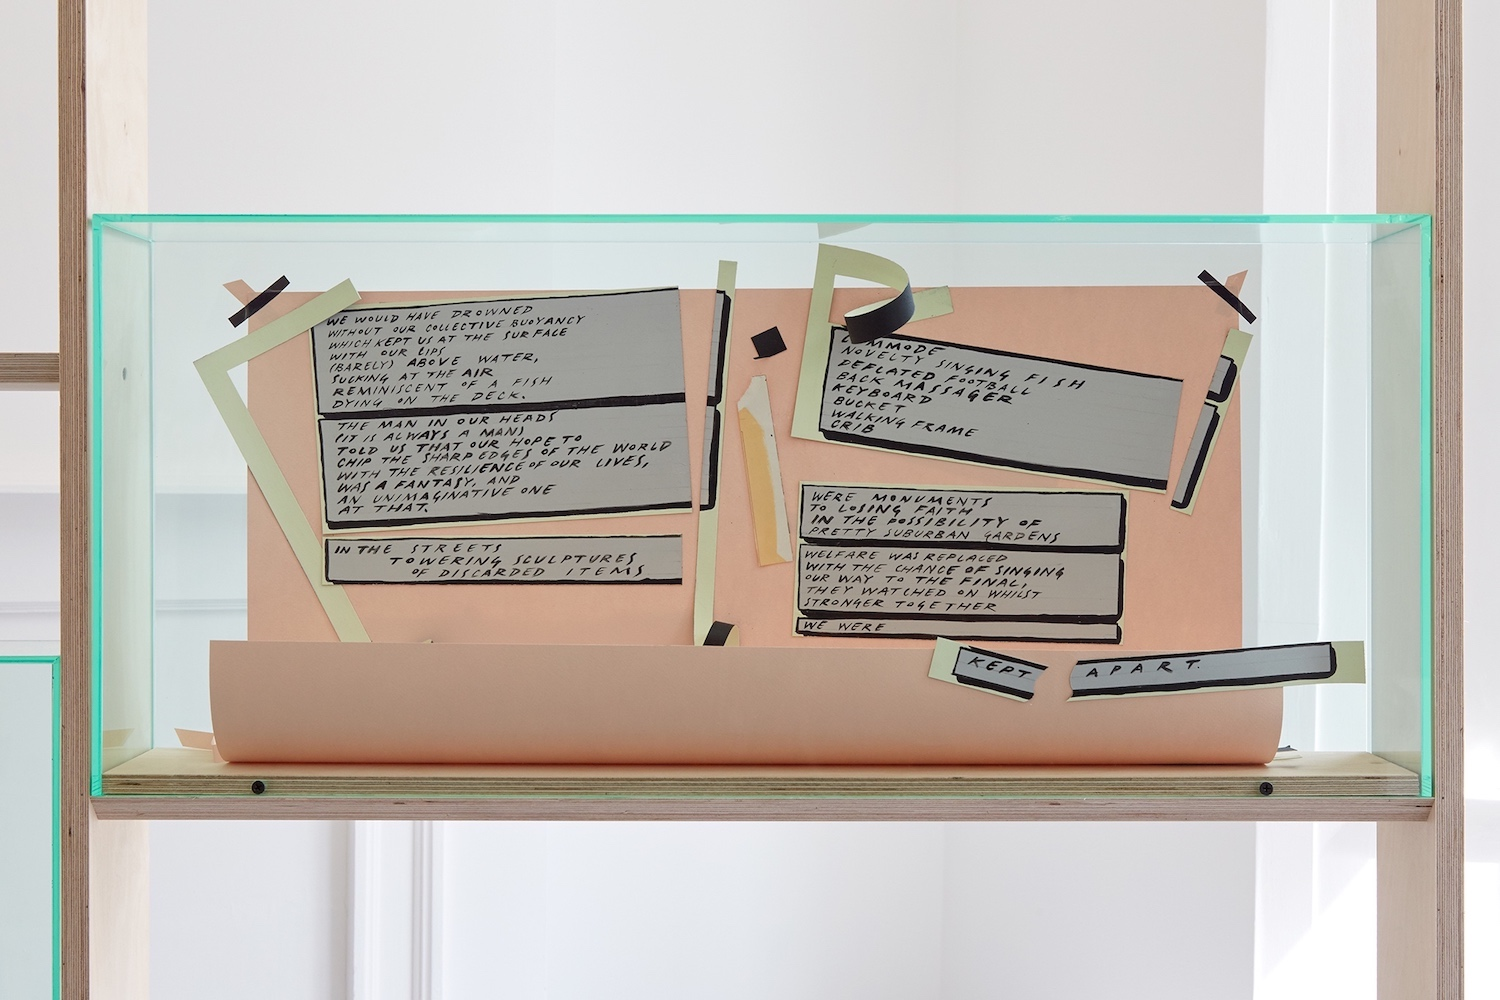 Charlie Godet Thomas, Songs of Experience (detail), 2018. Paper, double sided acid free tape, acrylic paint, arches watercolour paper, acrylic, birch plywood. 244 x 160 x 12 cm.